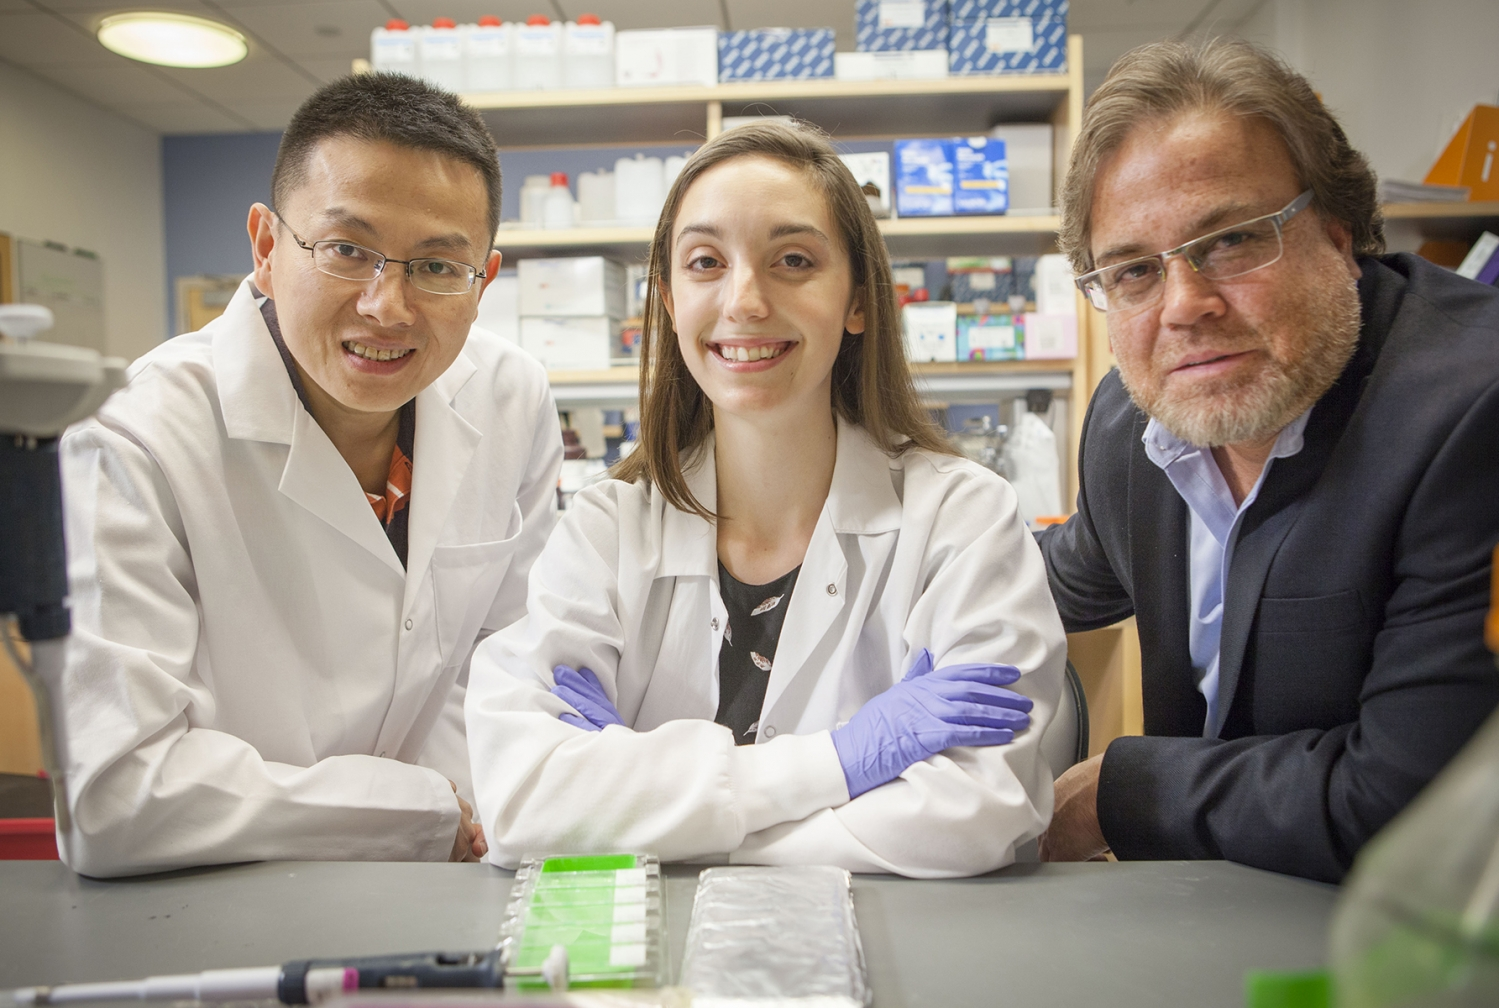 From left: Dr. Ding Cheng Gao, Kari Fischer, Dr. Vivek Mittal Photo credit: Carlos Rene Perez